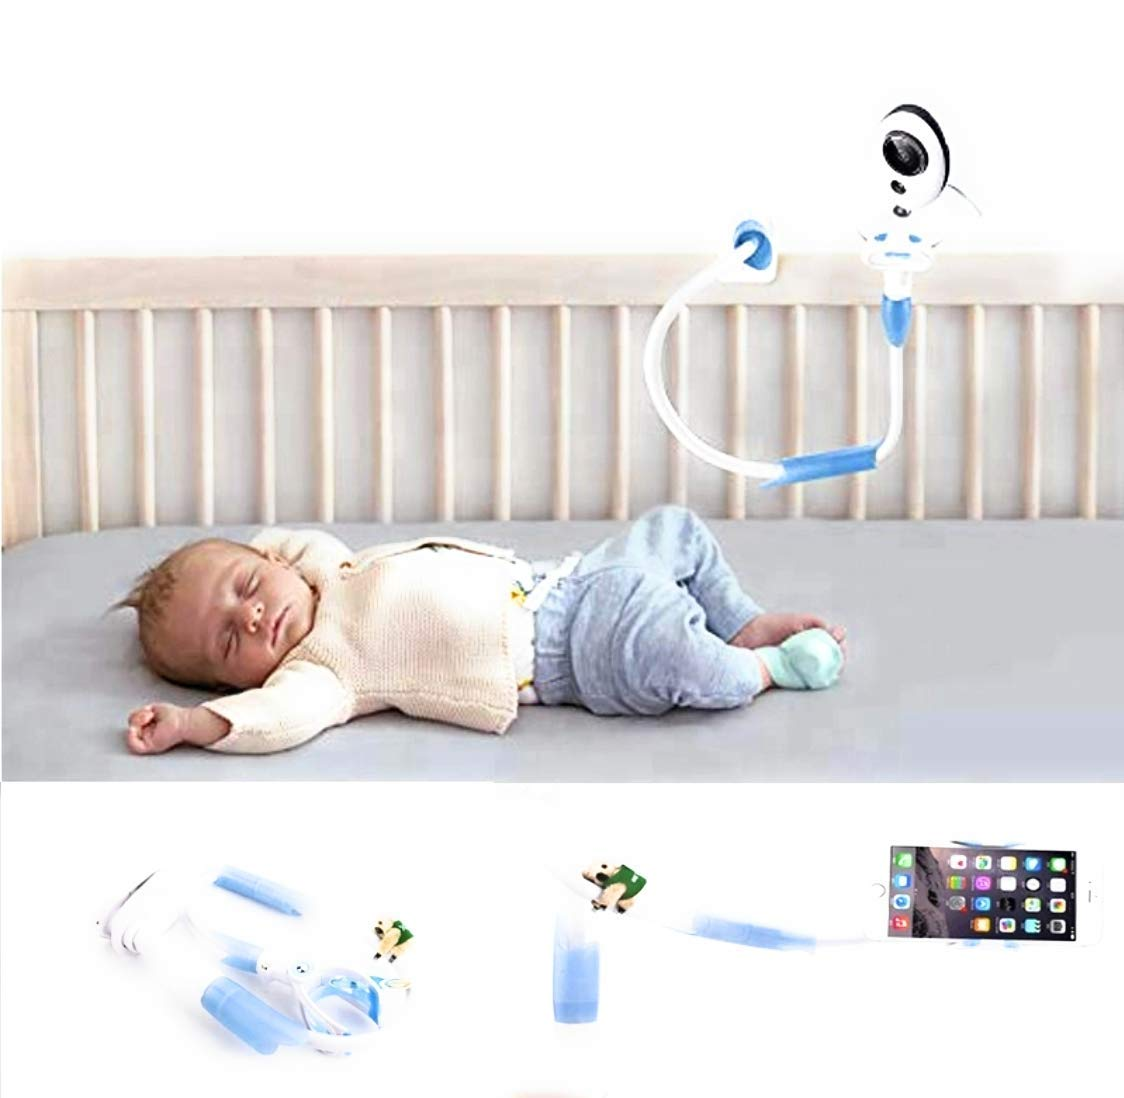 Universal Baby Monitor Holder with Straps, Flexible Hose Camera Stand by WOndr : Clamp Easy and Safe Mounted on Shelf for Nursery : Best Fit for Baby Video Monitor Cameras with Bases (Blue)  Shenzhen Top Nice International Technology Development Co., Ltd